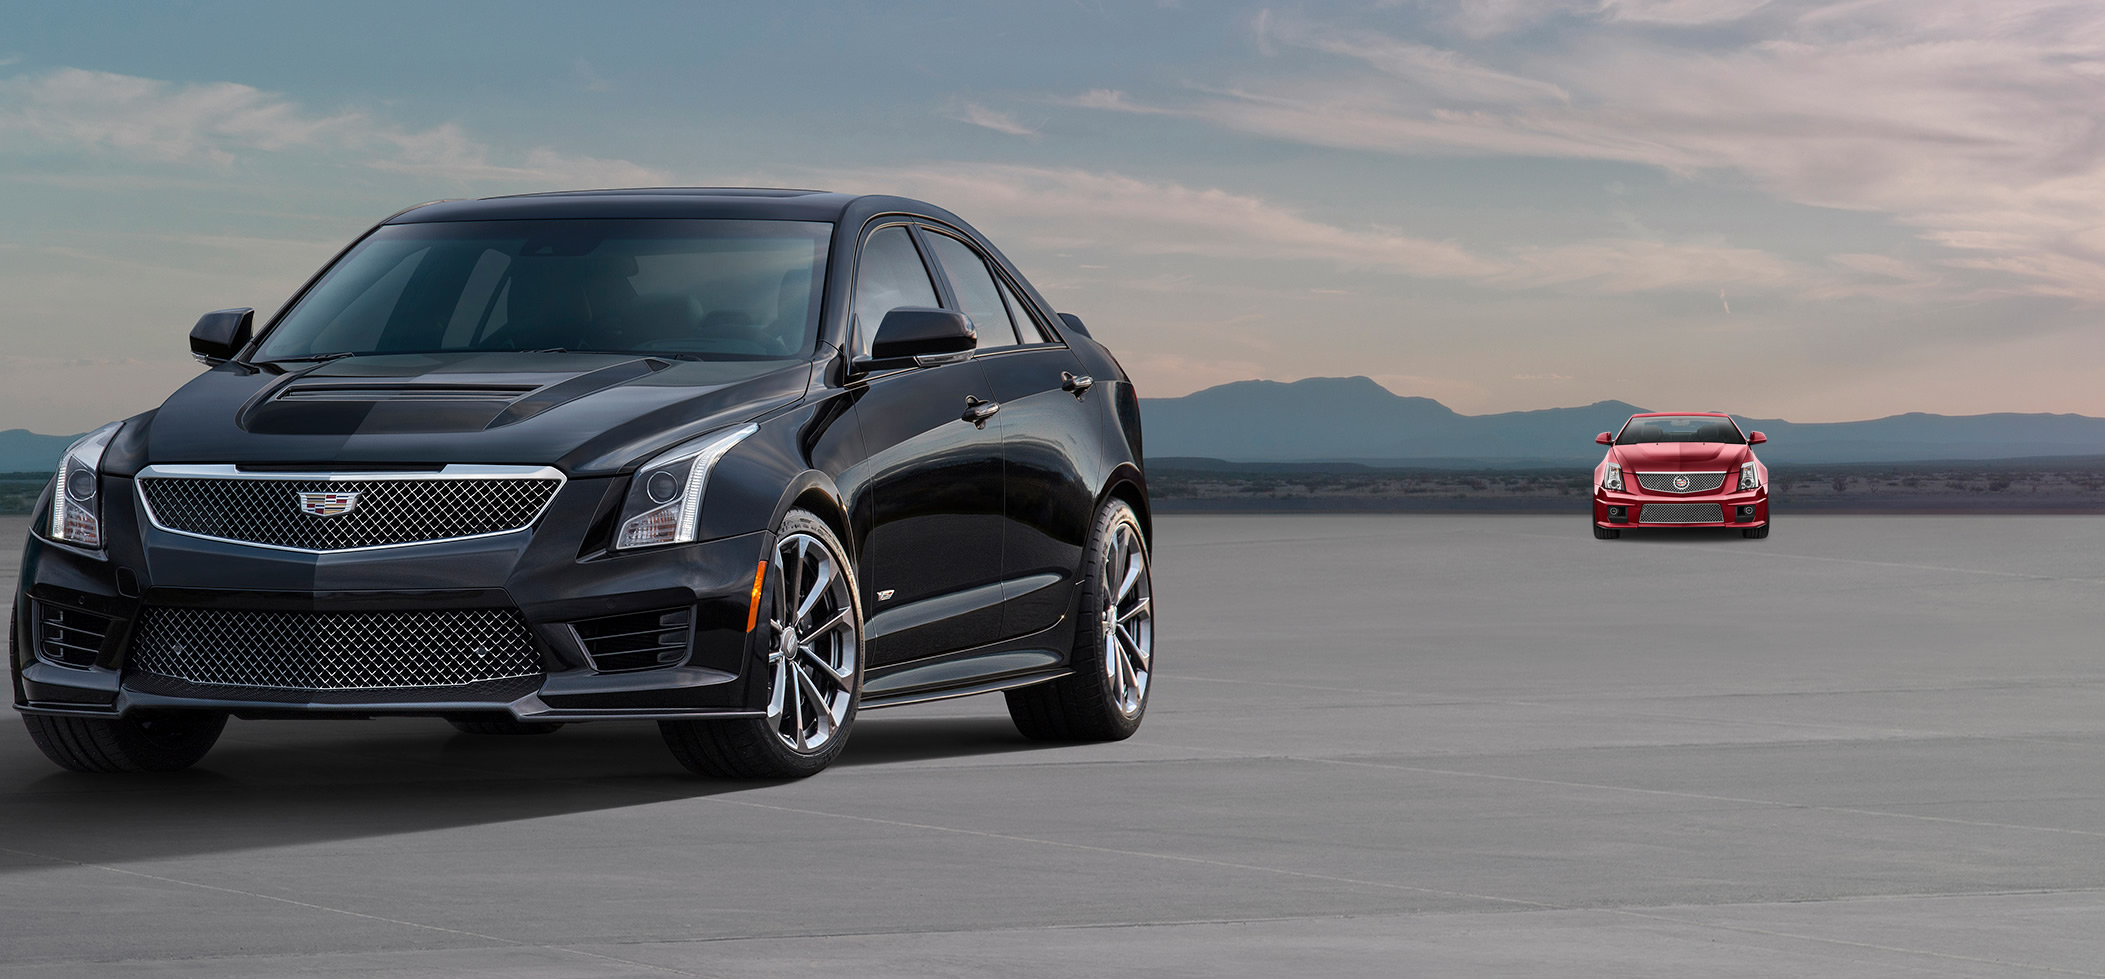 2007 cadillac cts v for sale with only 107 miles on the odometer cadillac v series forums for owners and enthusiasts 2007 cadillac cts v for sale with only